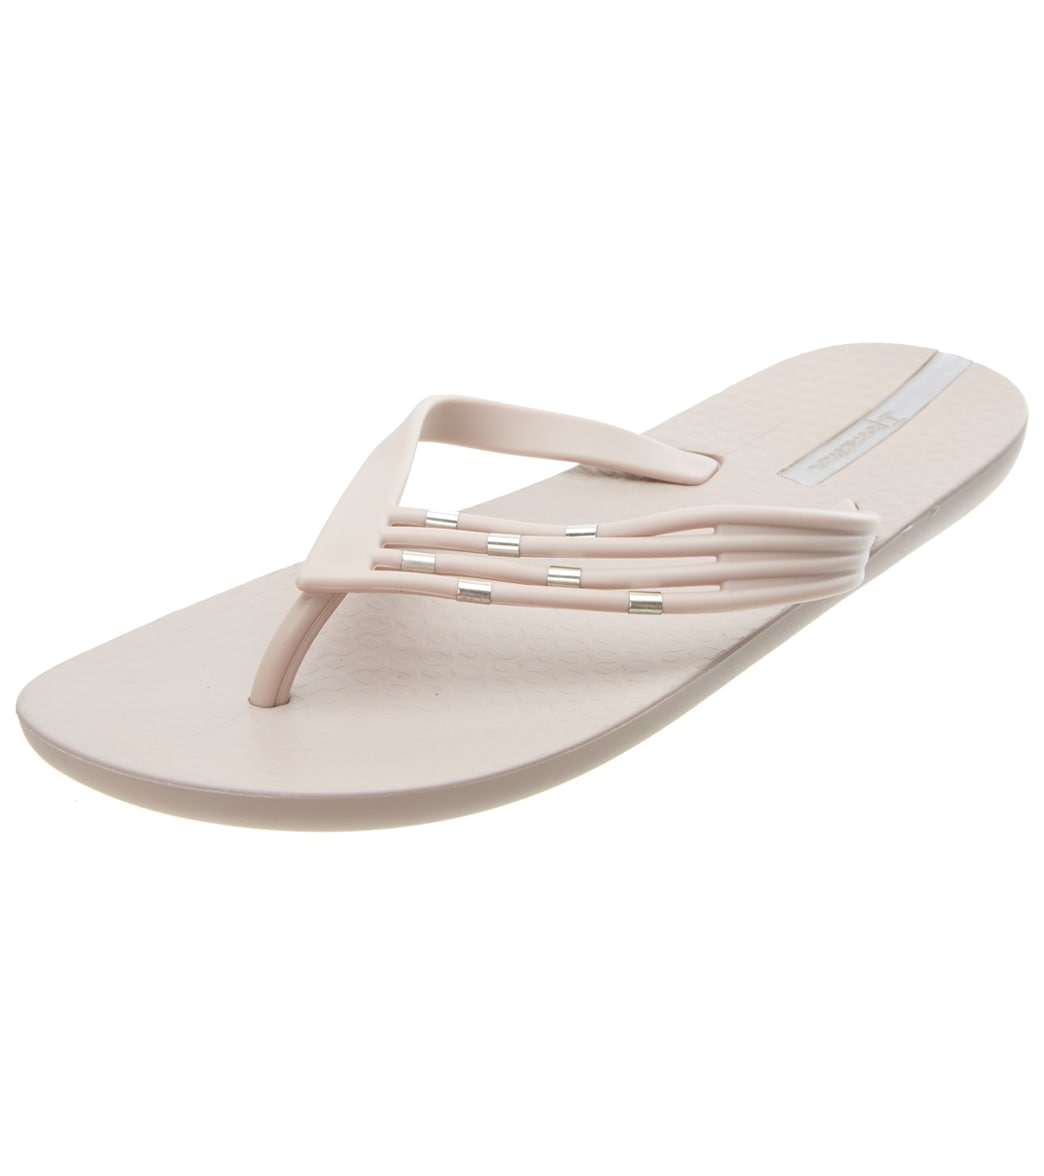 7bcf468a2ae7 Ipanema Women s Premium Sunset Flip Flop at SwimOutlet.com